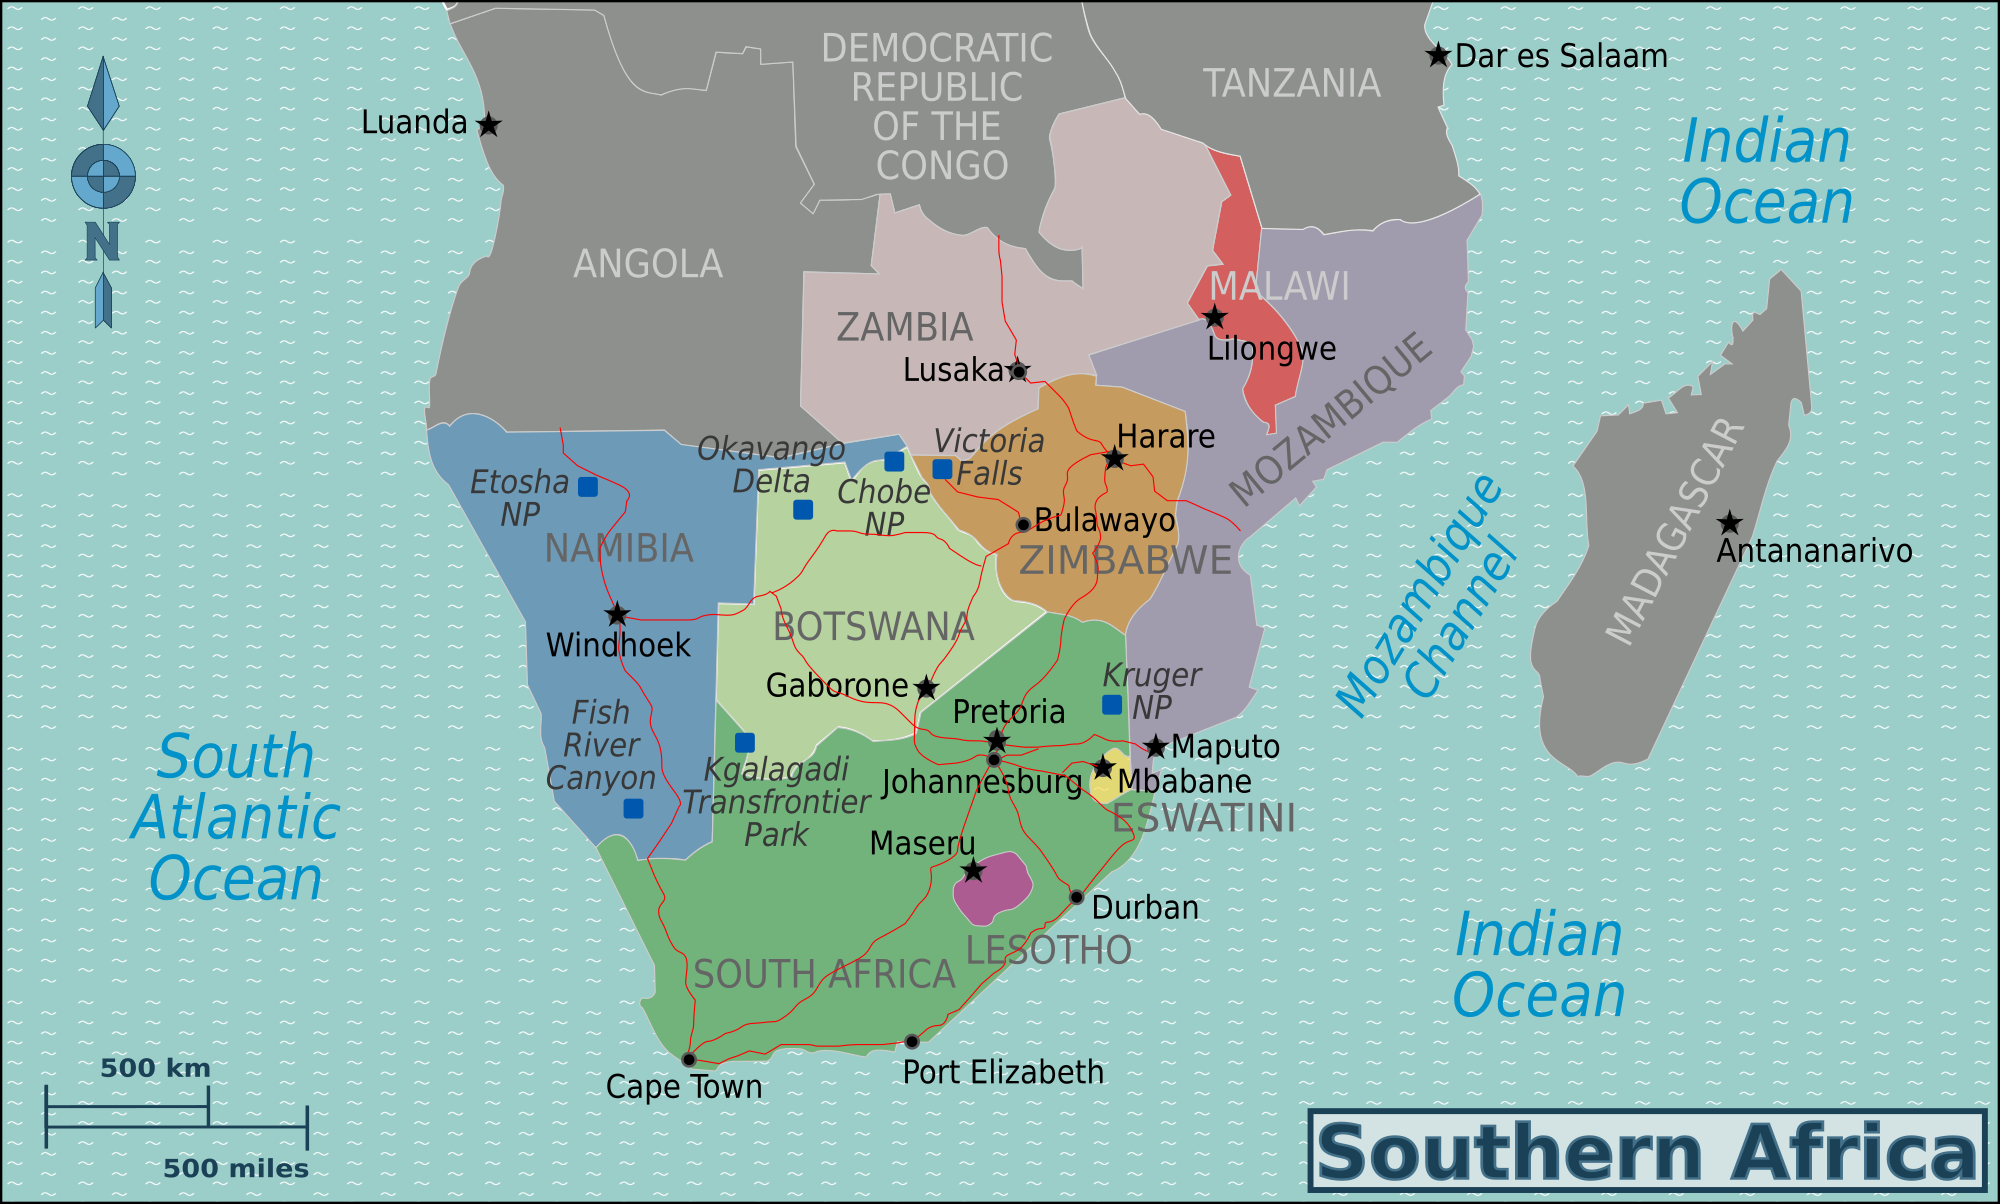 Southern Africa Map File:Southern Africa new map.png   Wikimedia Commons